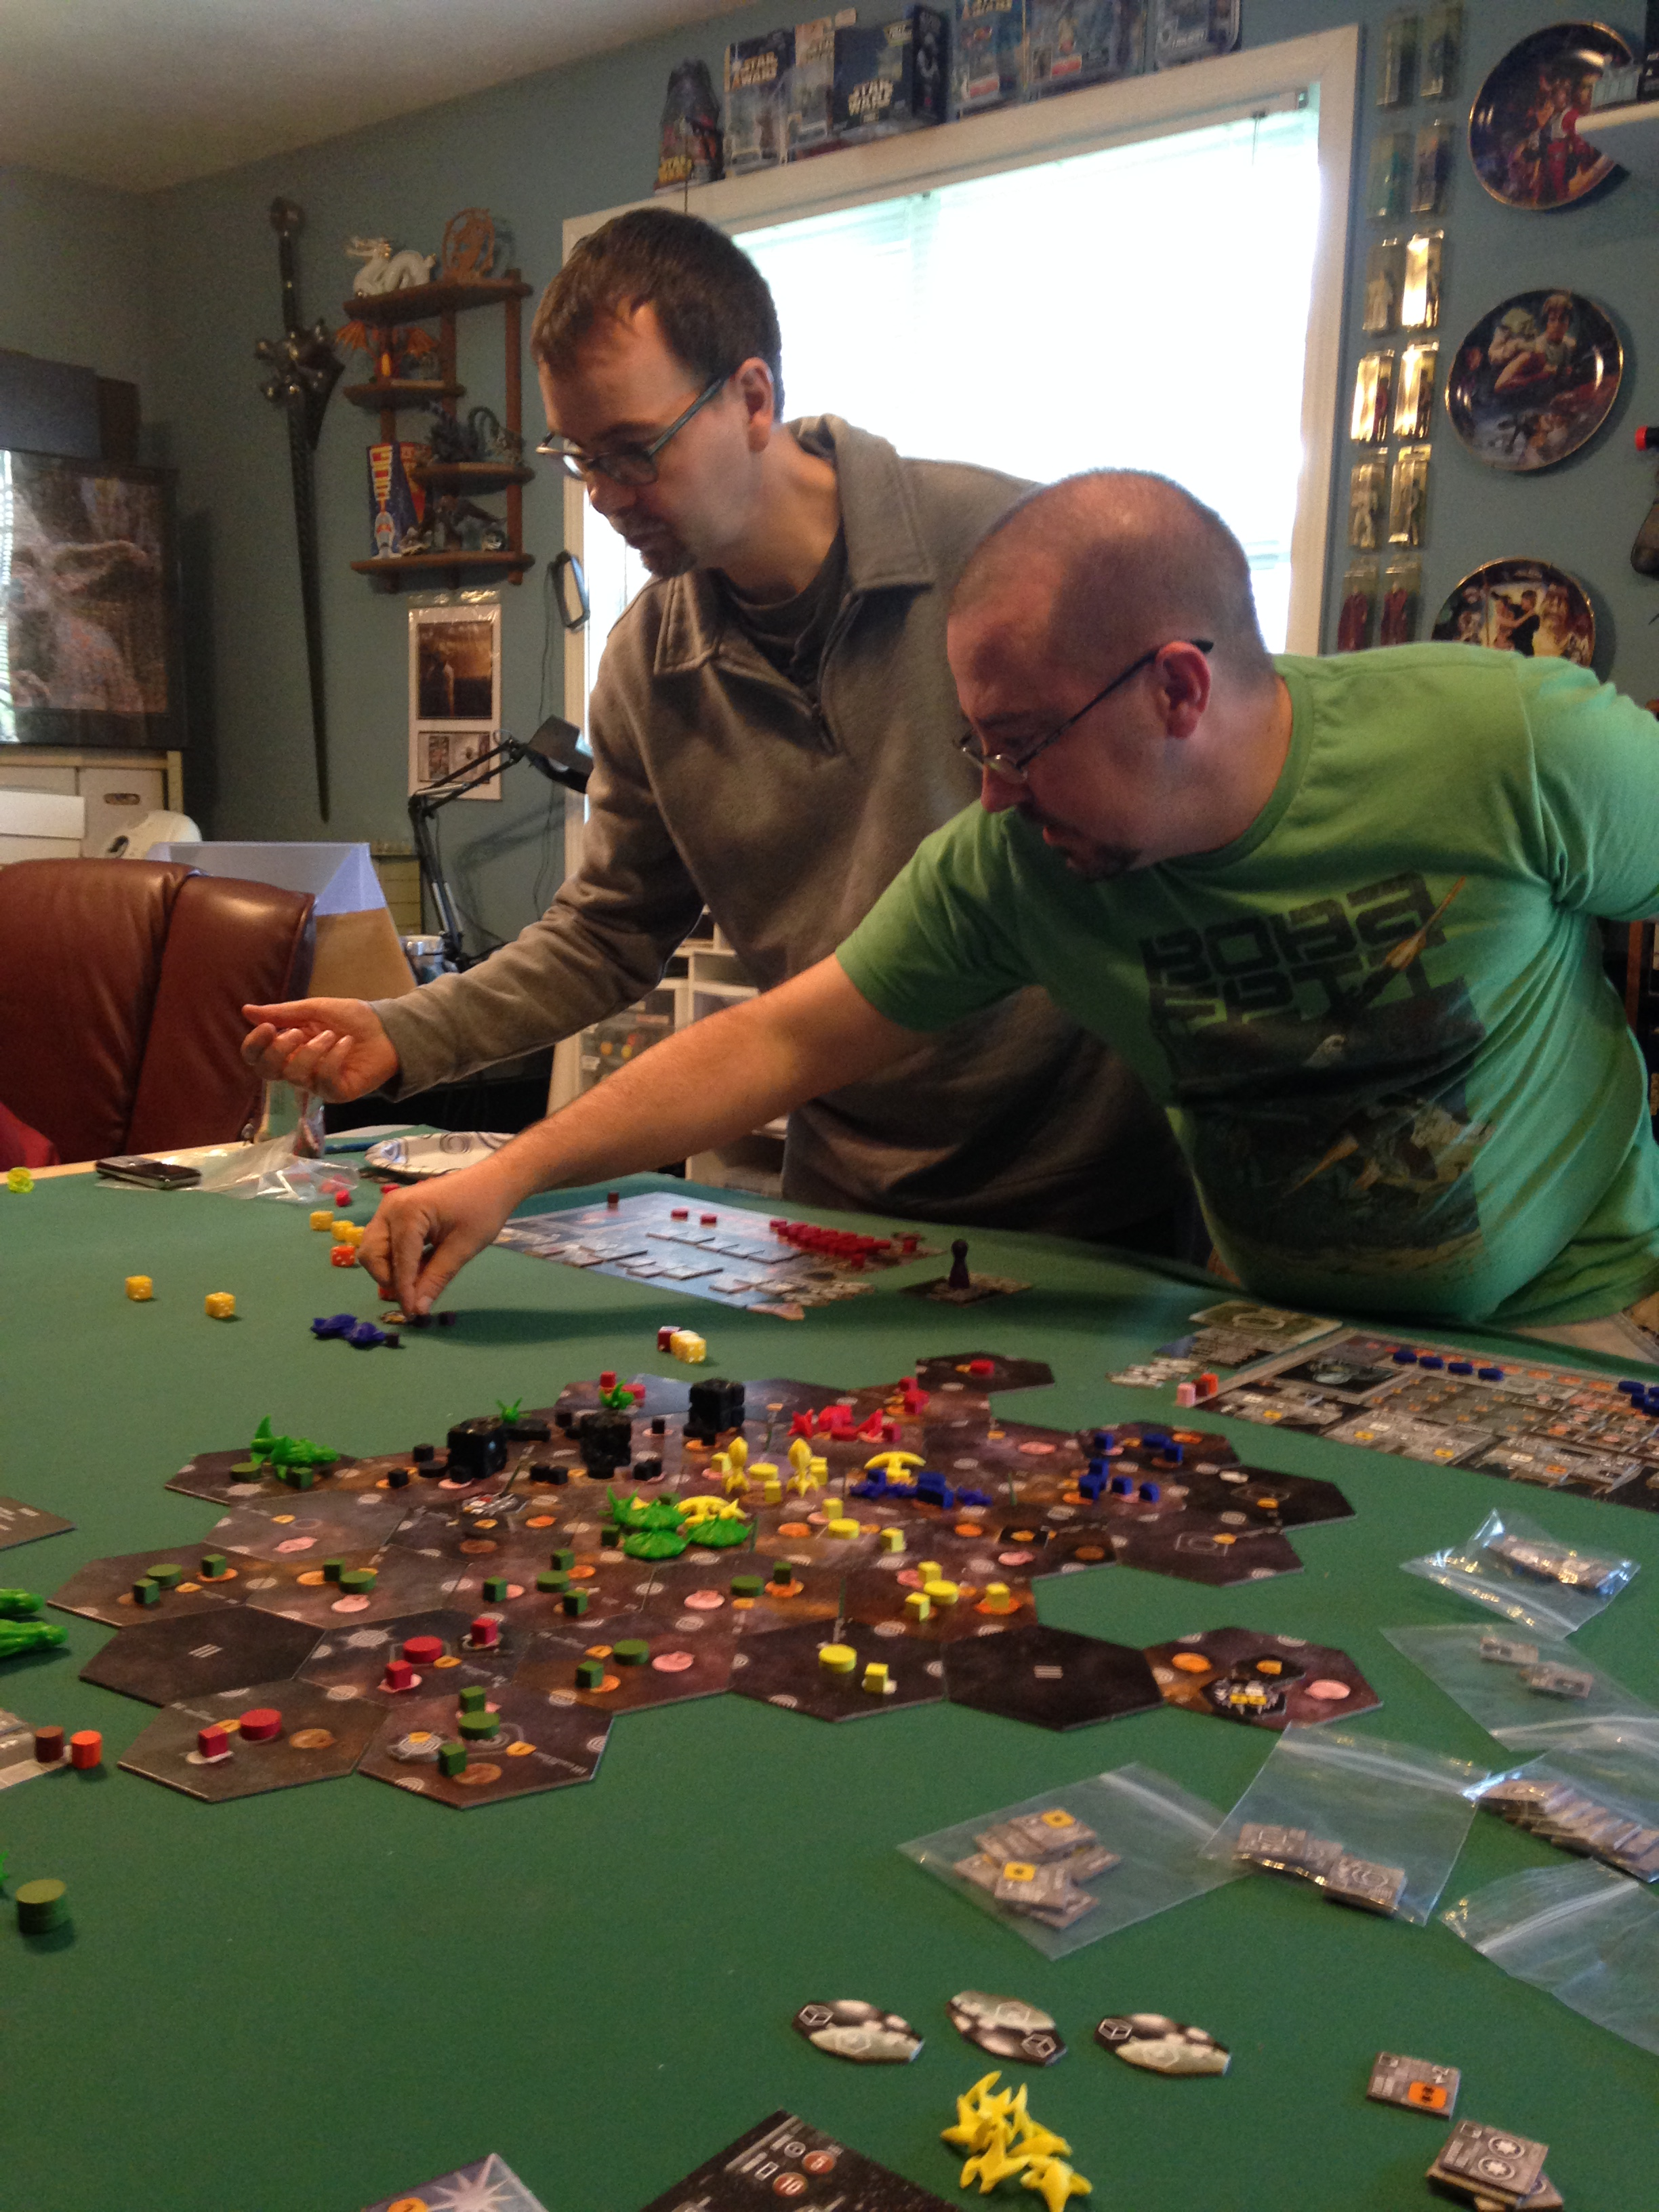 Later in the Eclipse game, Mike and Owen do battle with their fleets.